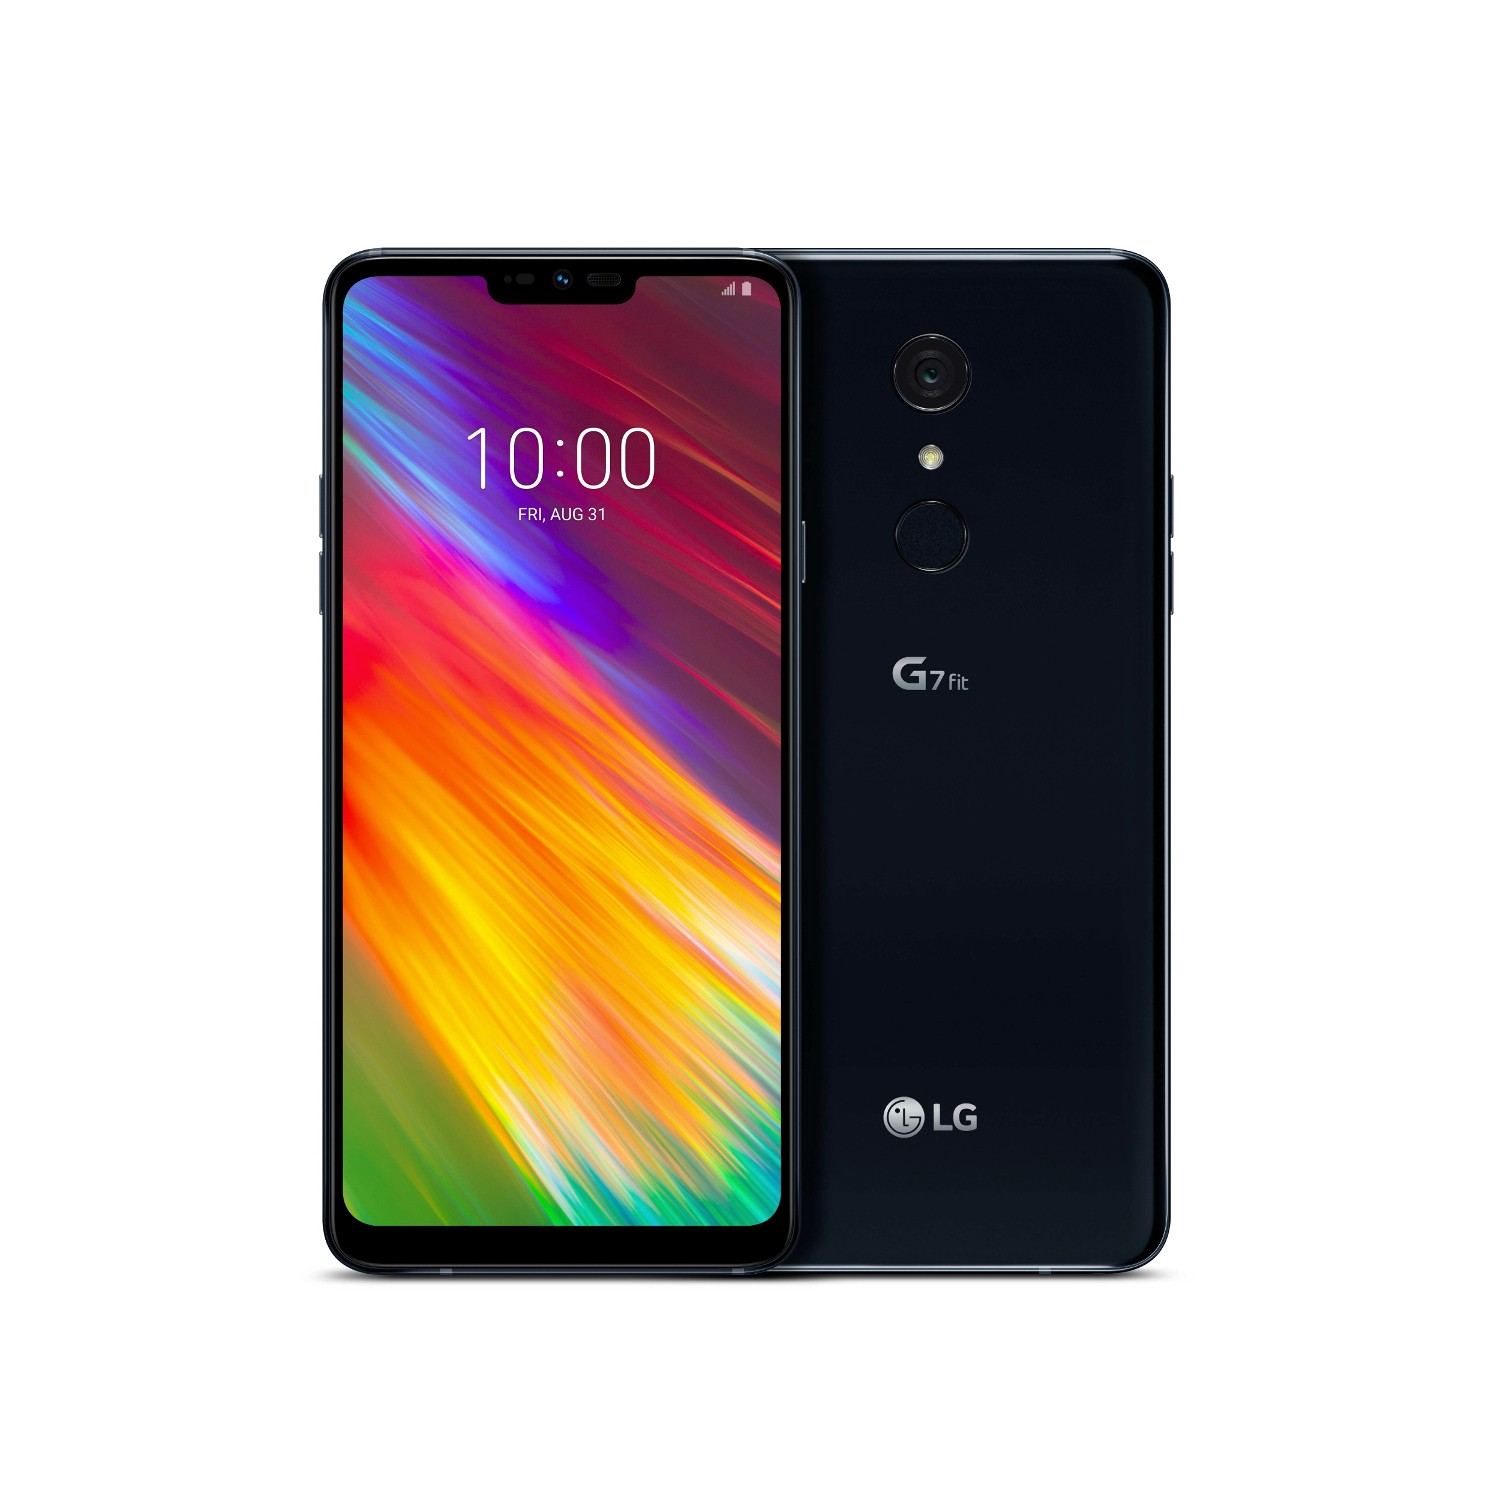 The front and rear view of the LG G7 Fit in New Aurora Black